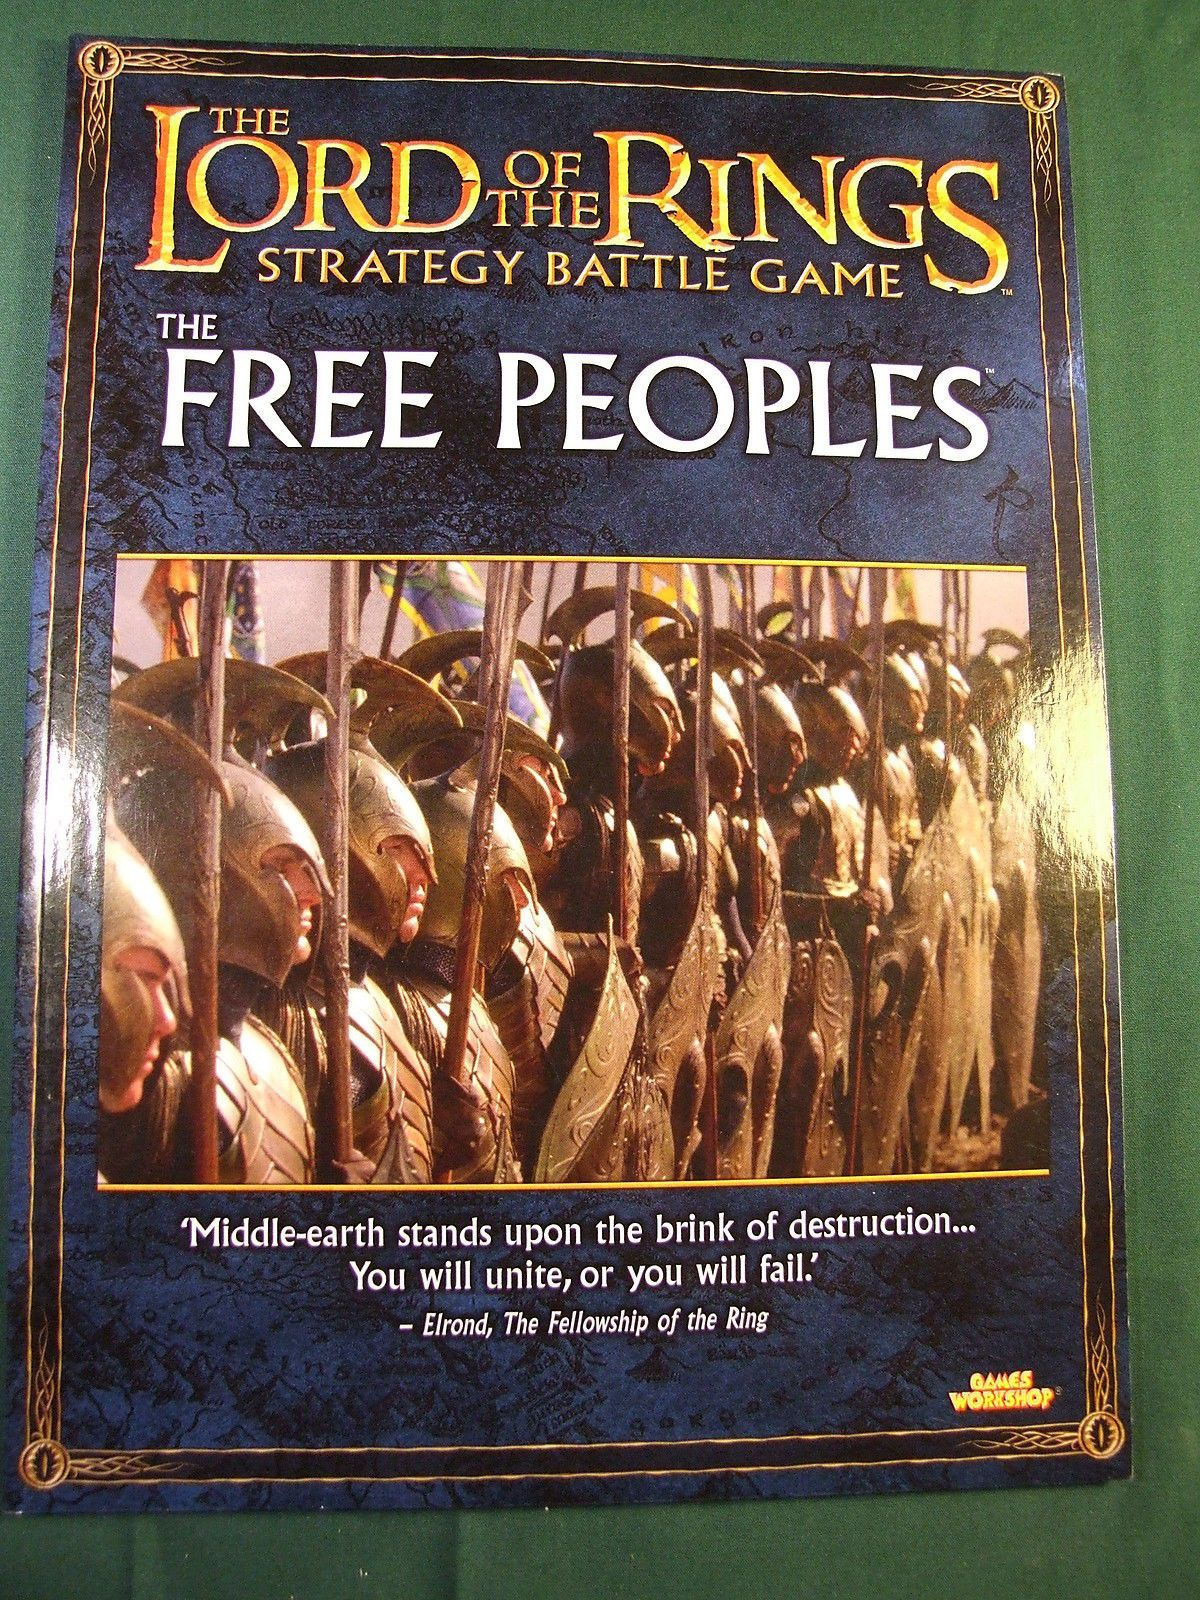 GW LORD OF THE RINGS THE FREE PEOPLES EXPANSION BOOK